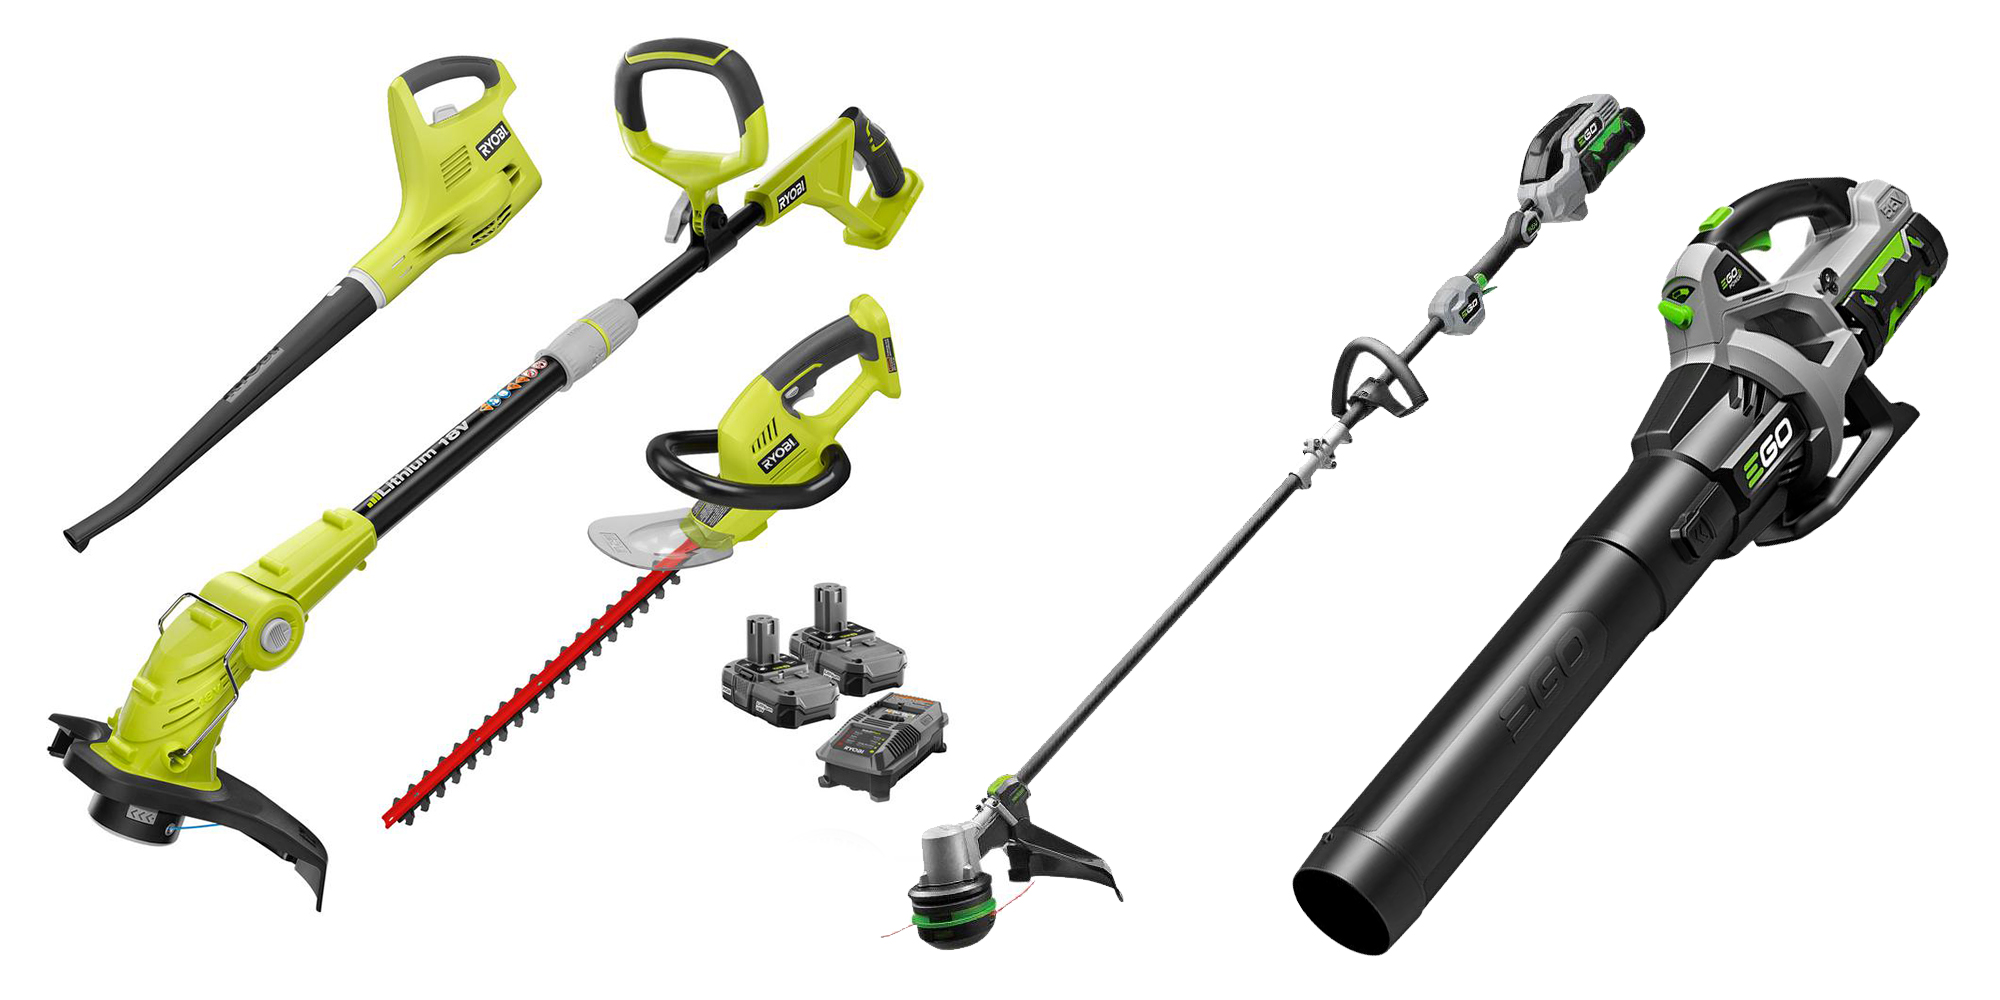 Save on EGO and Ryobi electric outdoor tools in today's best Green Deals